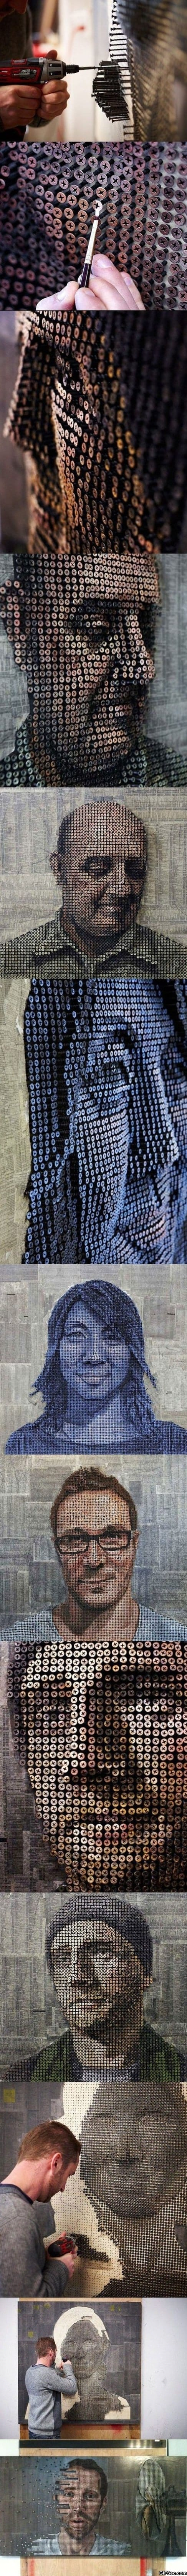 3d-portraits-made-out-of-screws